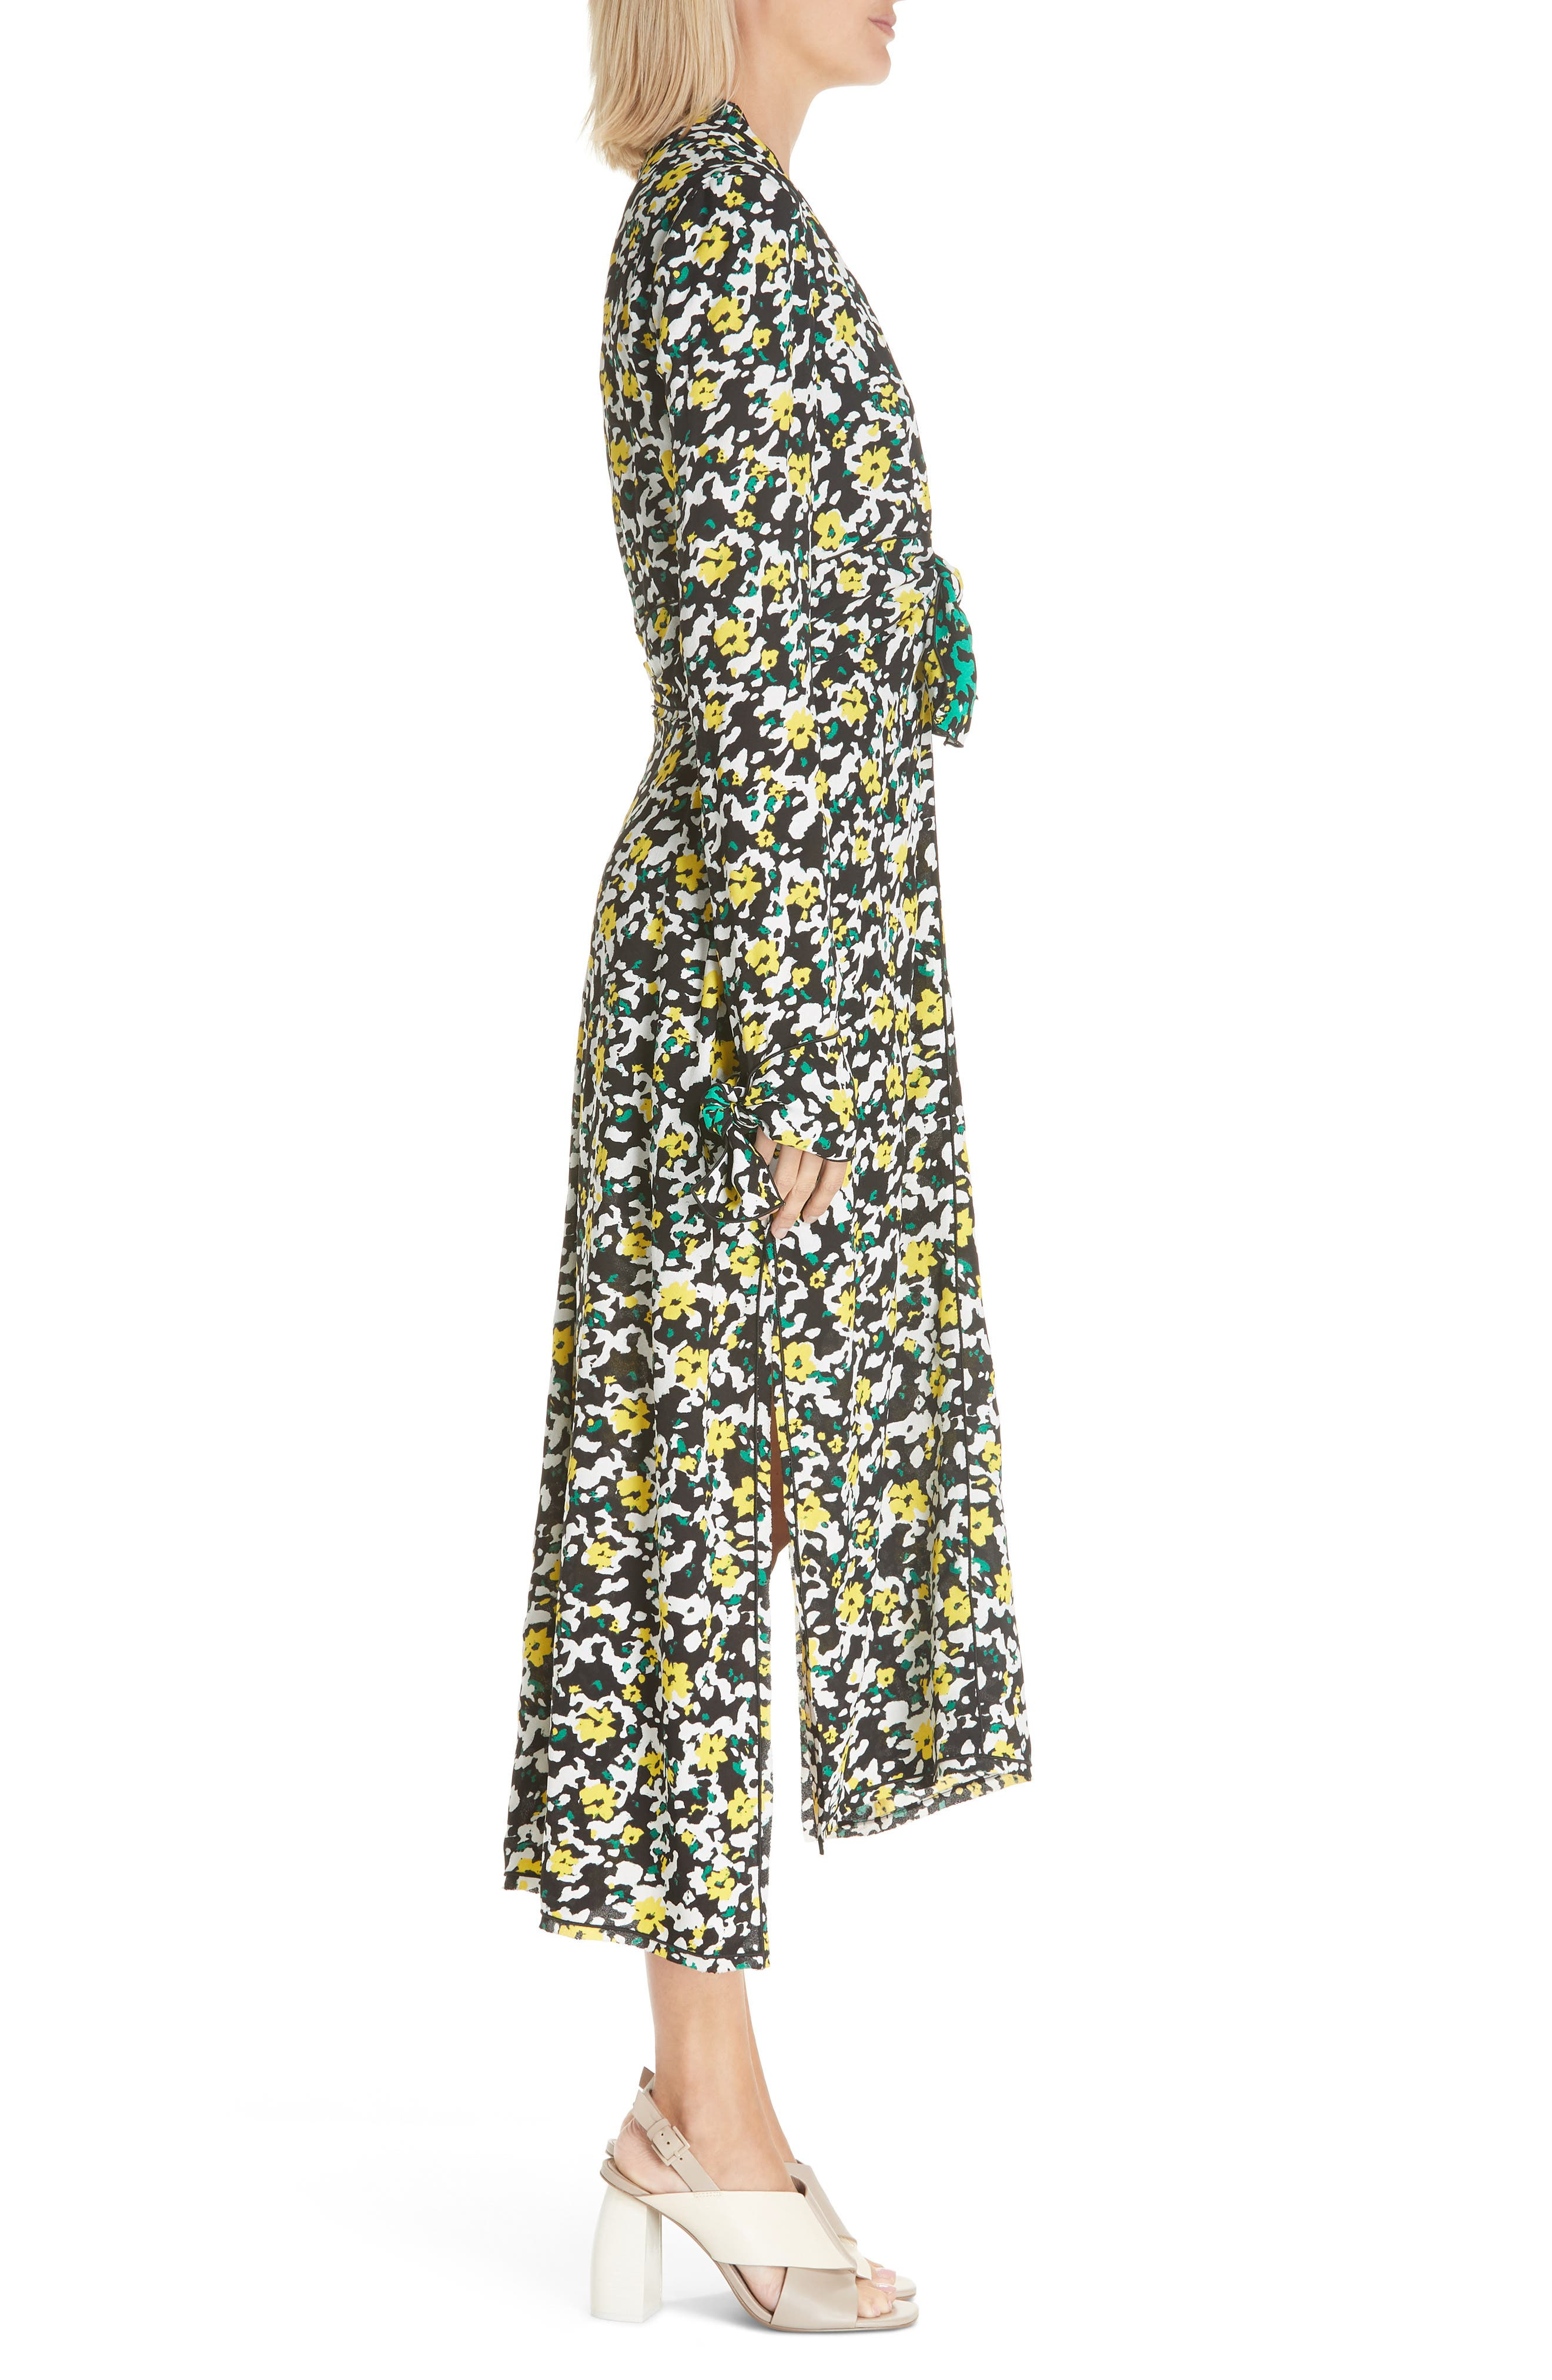 PROENZA SCHOULER, Floral Print Knotted Midi Dress, Alternate thumbnail 4, color, WHITE WILDFLOWER